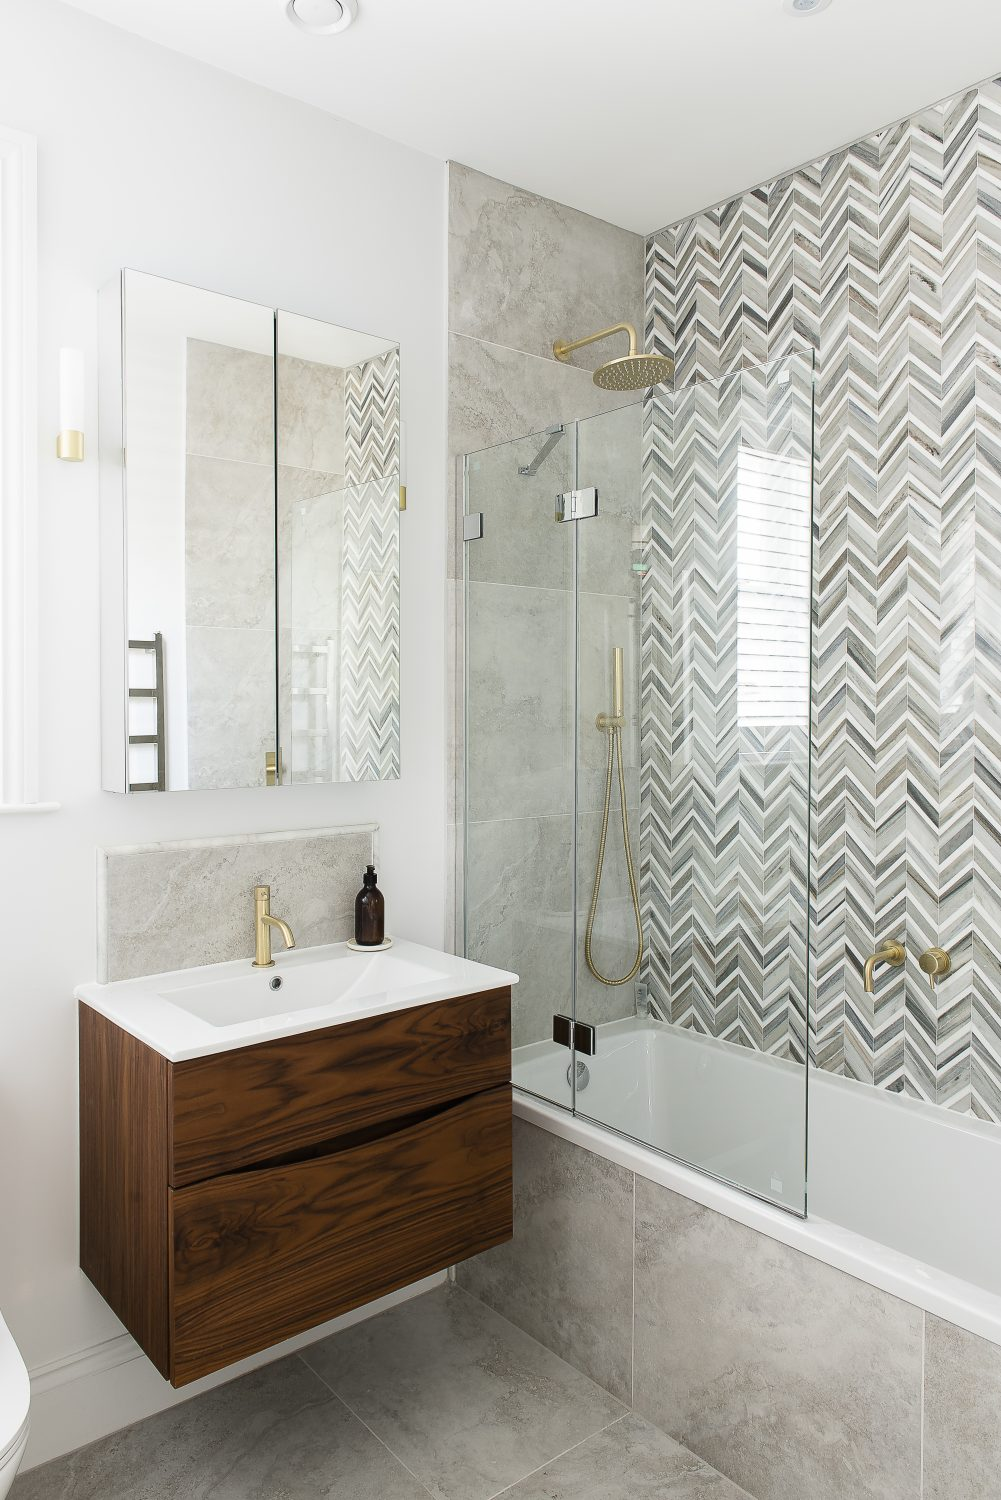 The same herringbone tiles form a beautiful backdrop to the bath and shower in a guest bathroom